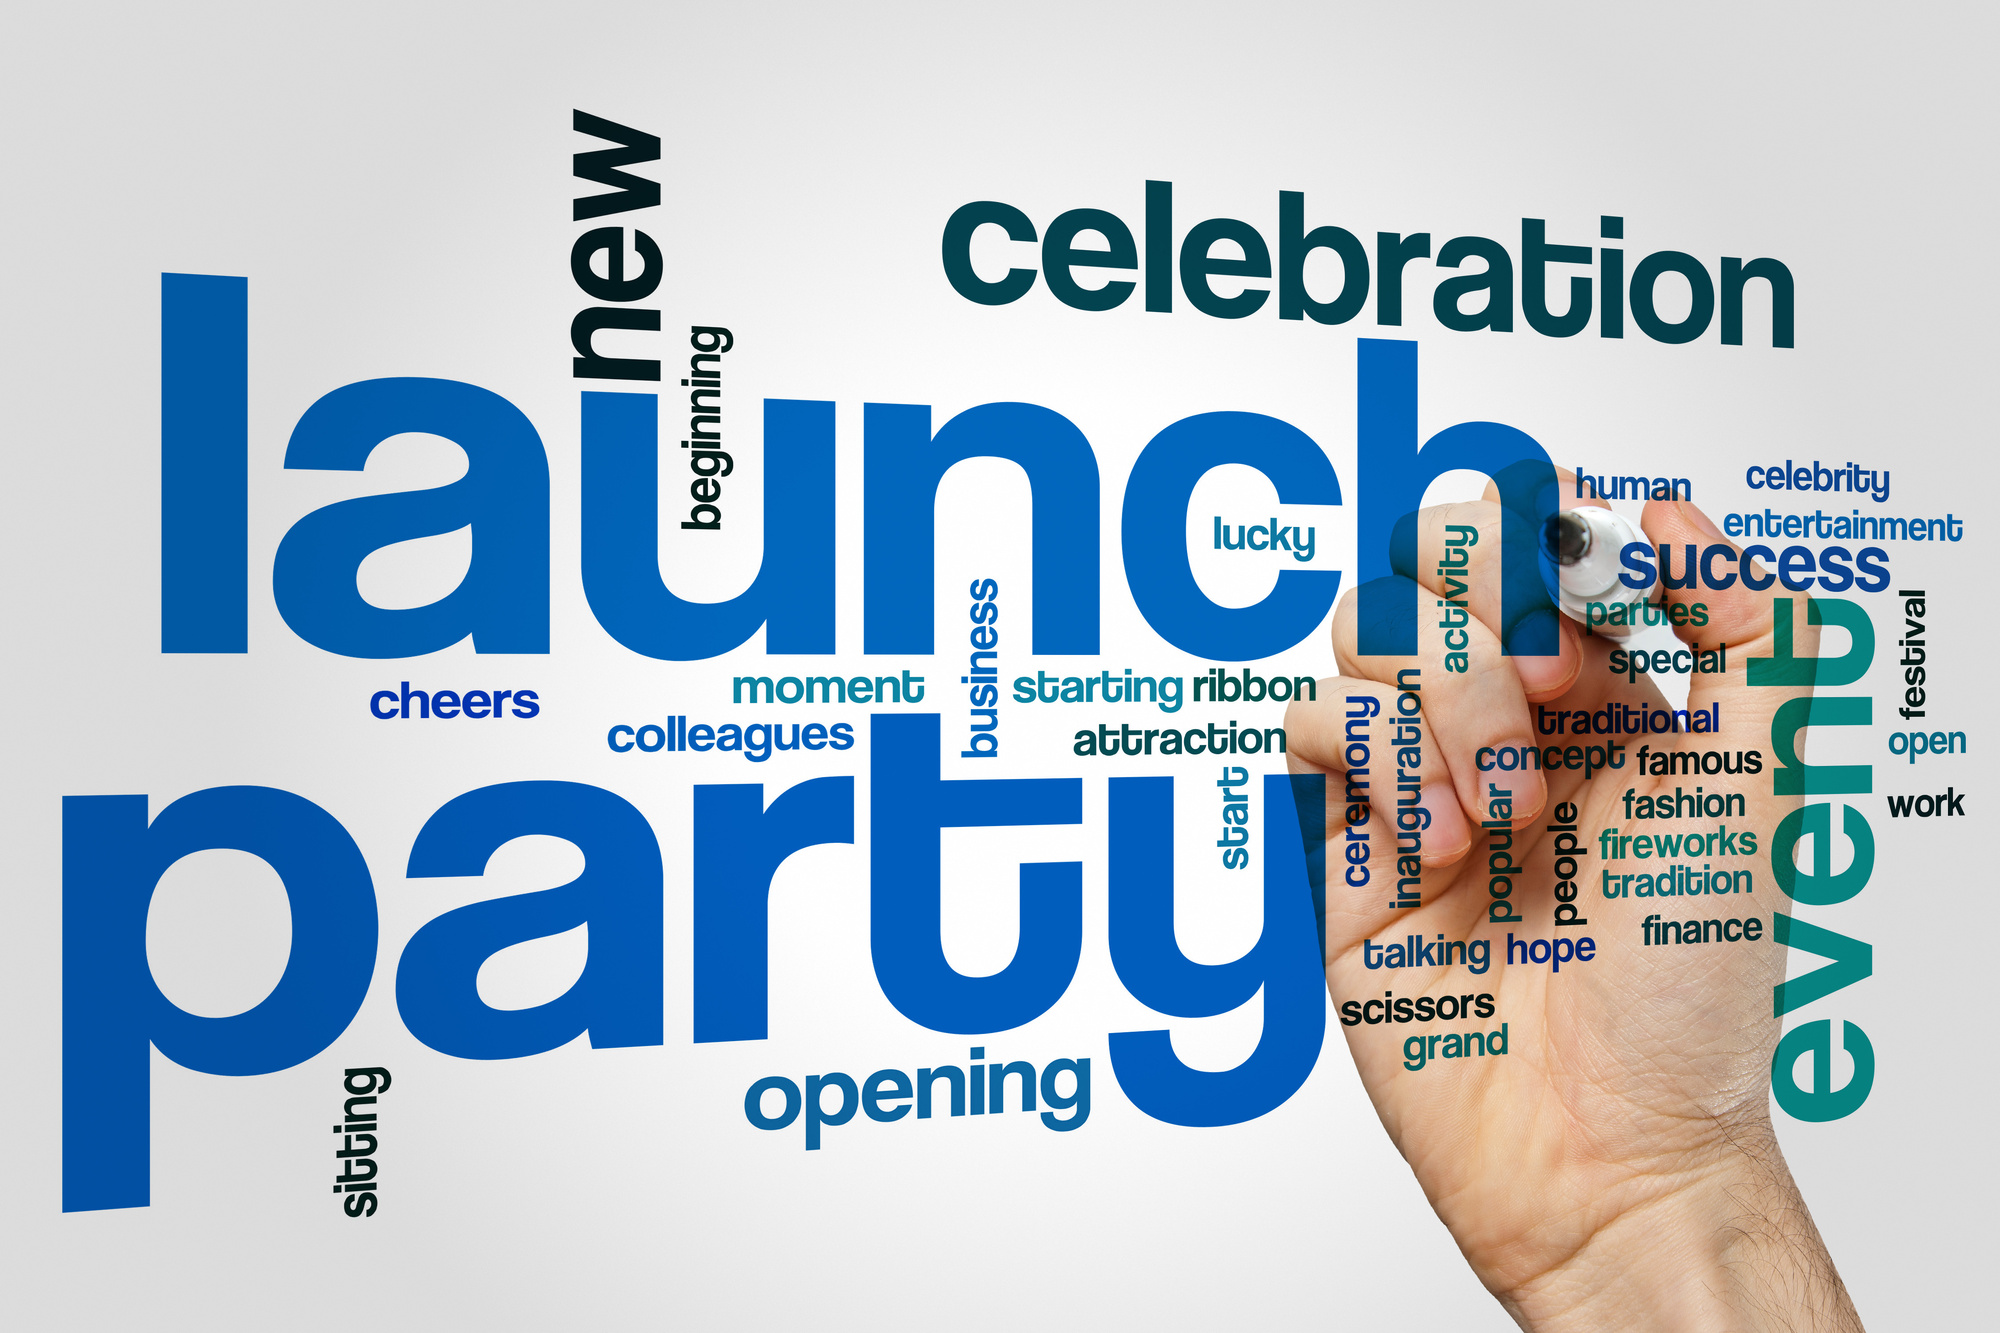 launch party and related terms